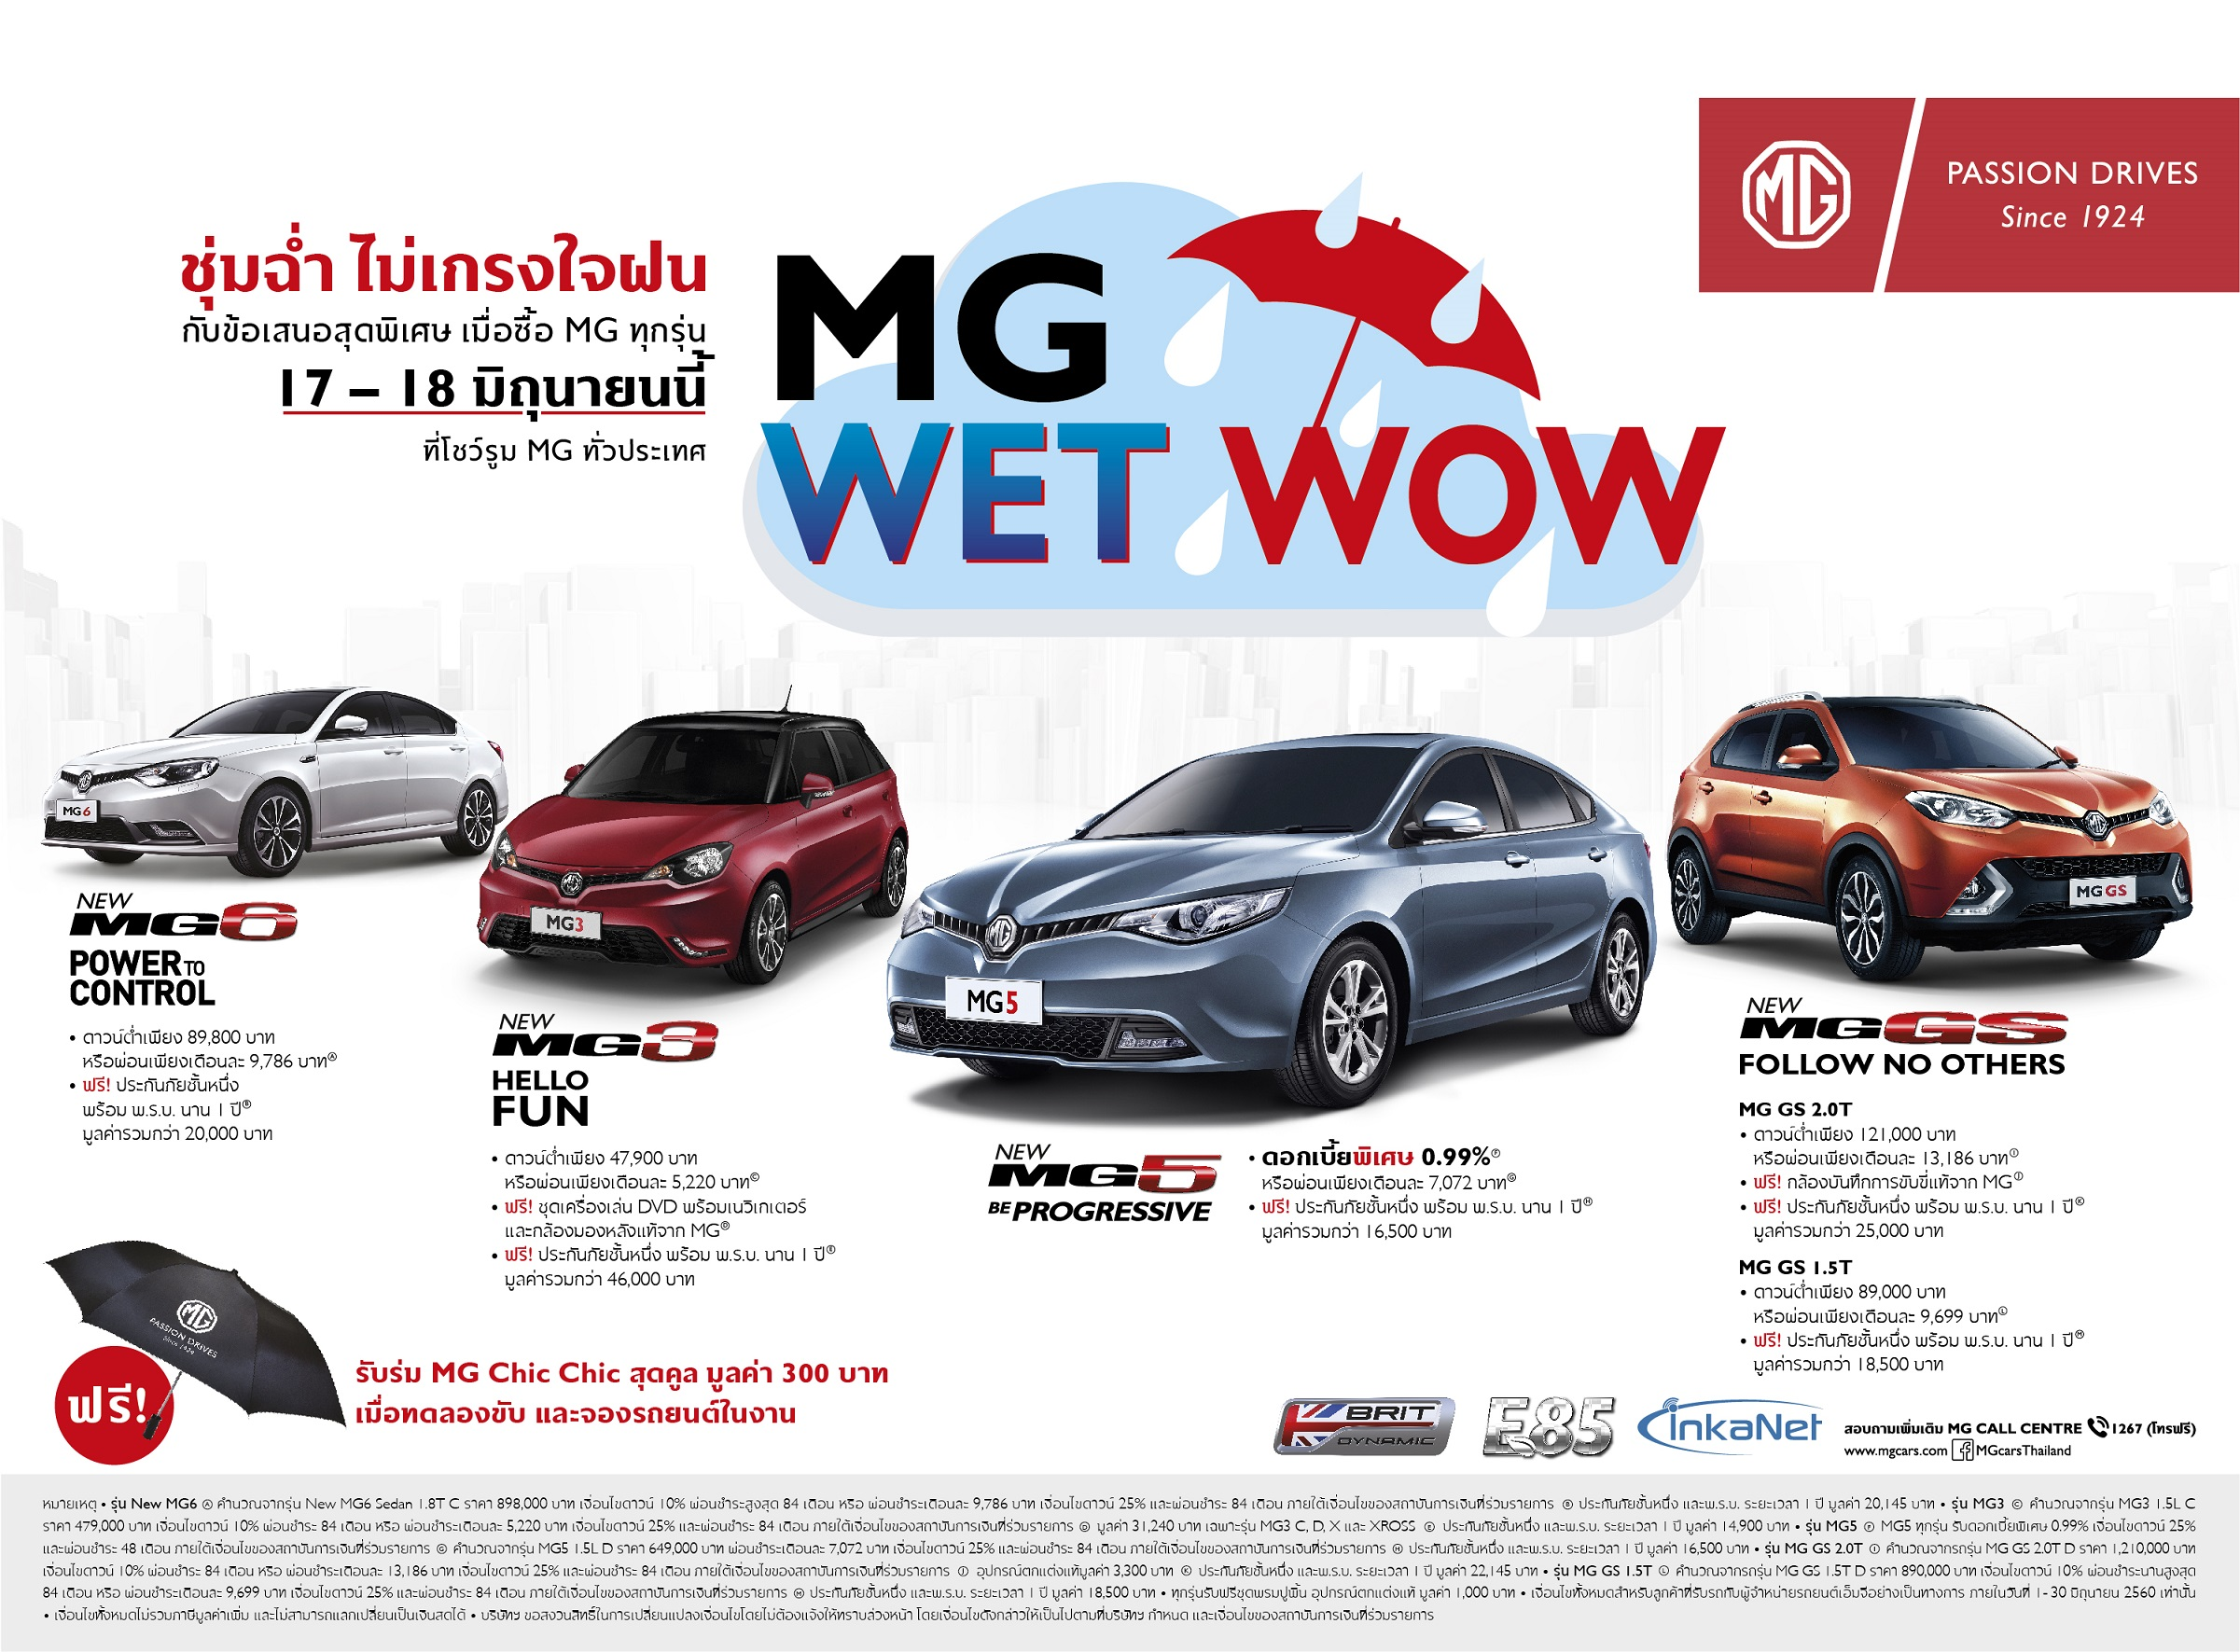 MG Wet Wow